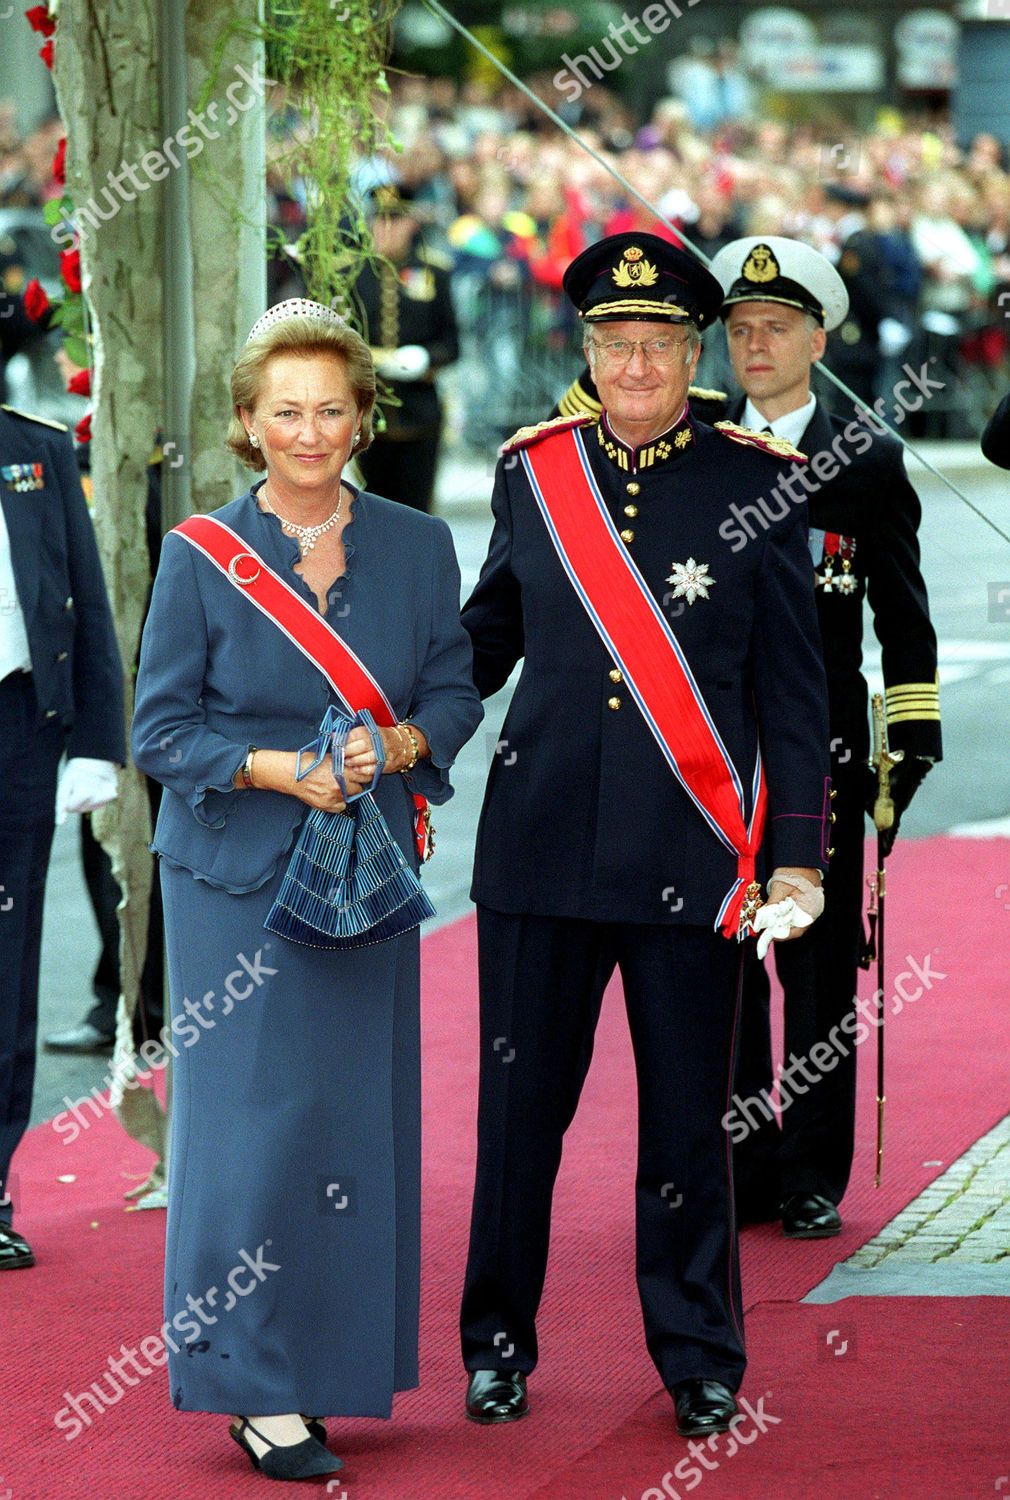 THE ROYAL WEDDING OF CROWN PRINCE HAAKON MAGNUS AND METTE-MARIT TJESSEN HOIBY IN OSLO NORWAY - 25 AUG 2001: стоковое фото